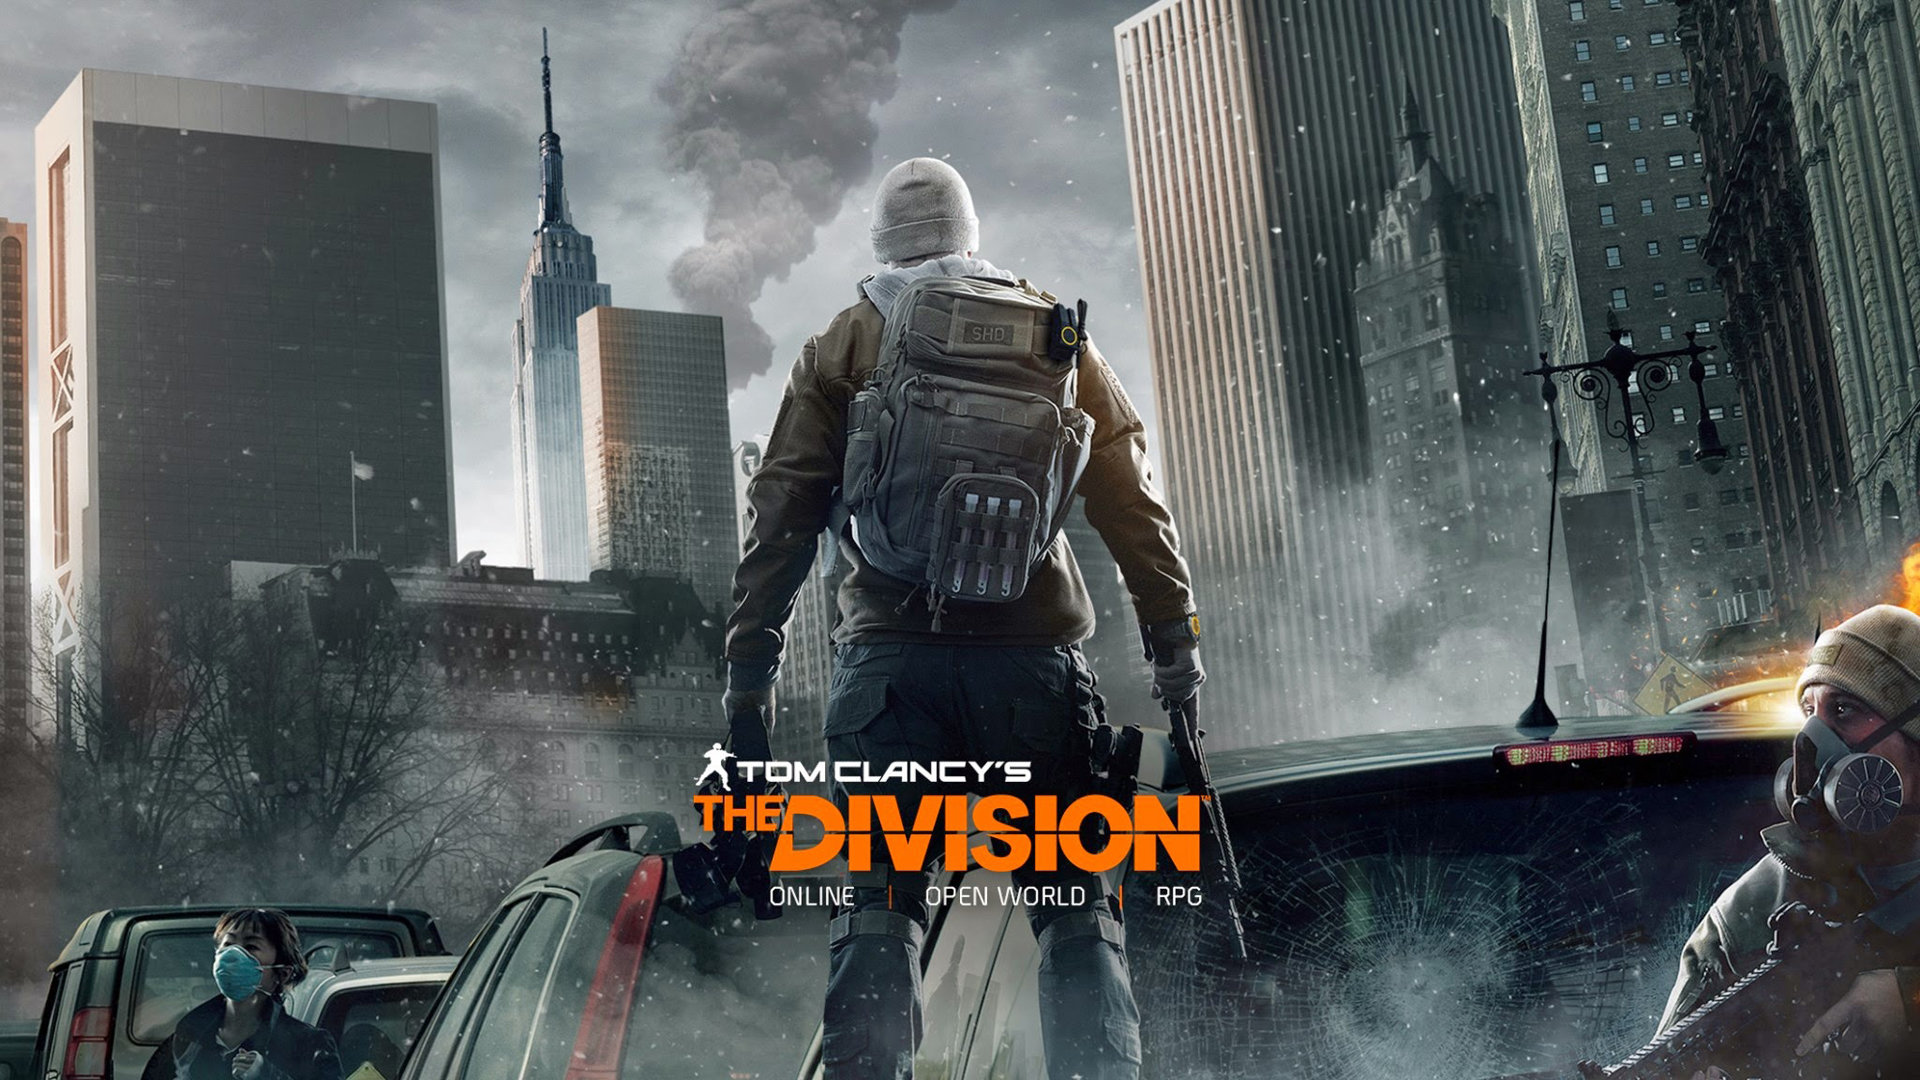 Best Tom Clancys The Division Wallpaper ID450079 For High Resolution Full Hd 1920x1080 Desktop